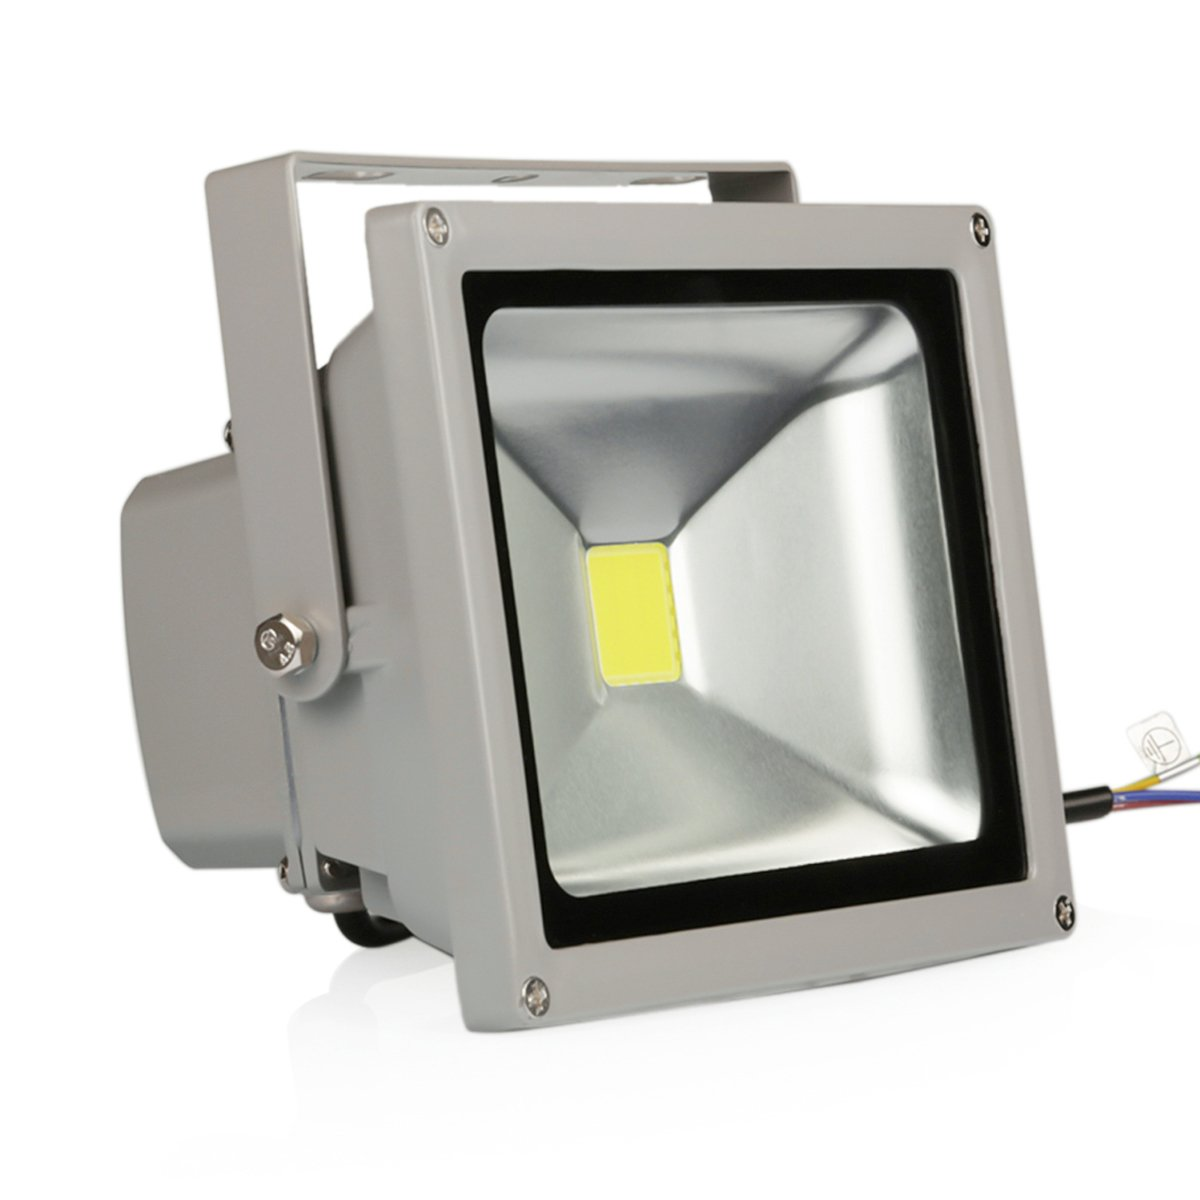 LEDMO 20w flood lights LED Waterproof IP65 Floodlight, Daylight White - -  Amazon.com